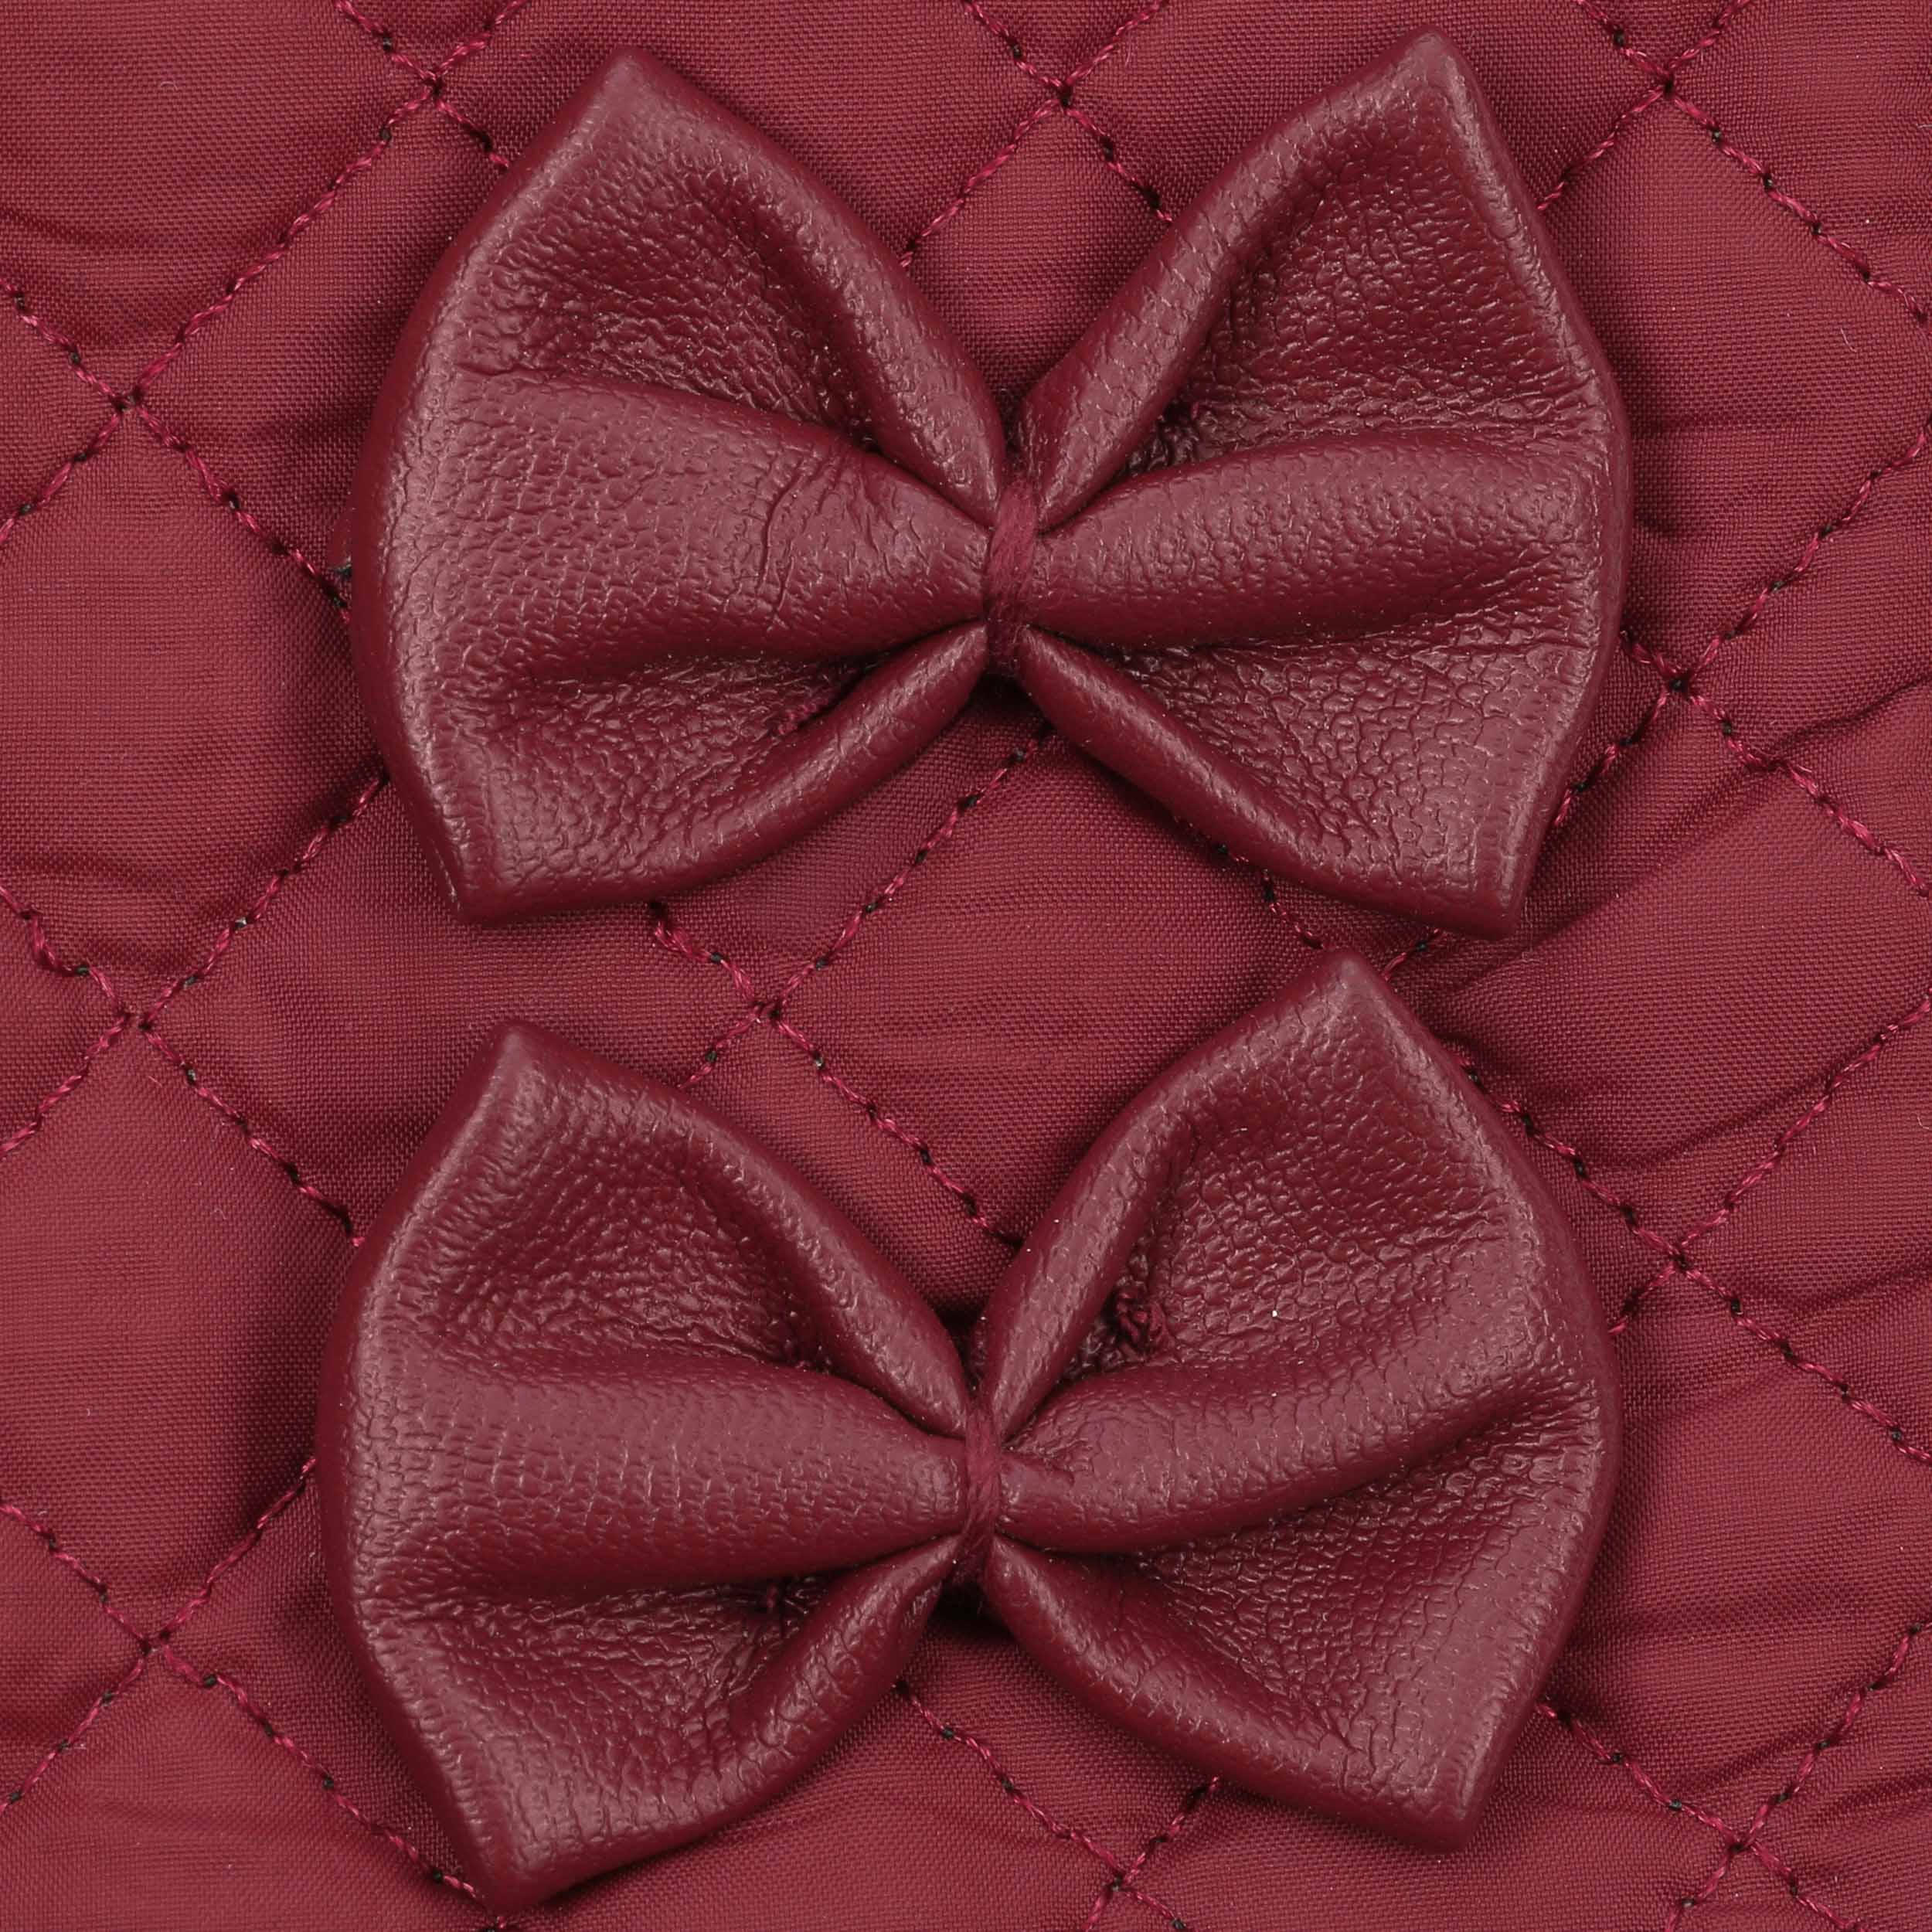 ... Guanti da Donna Quilted by McBURN - rosso bordeaux 2 ... 0032ca9d6ceb